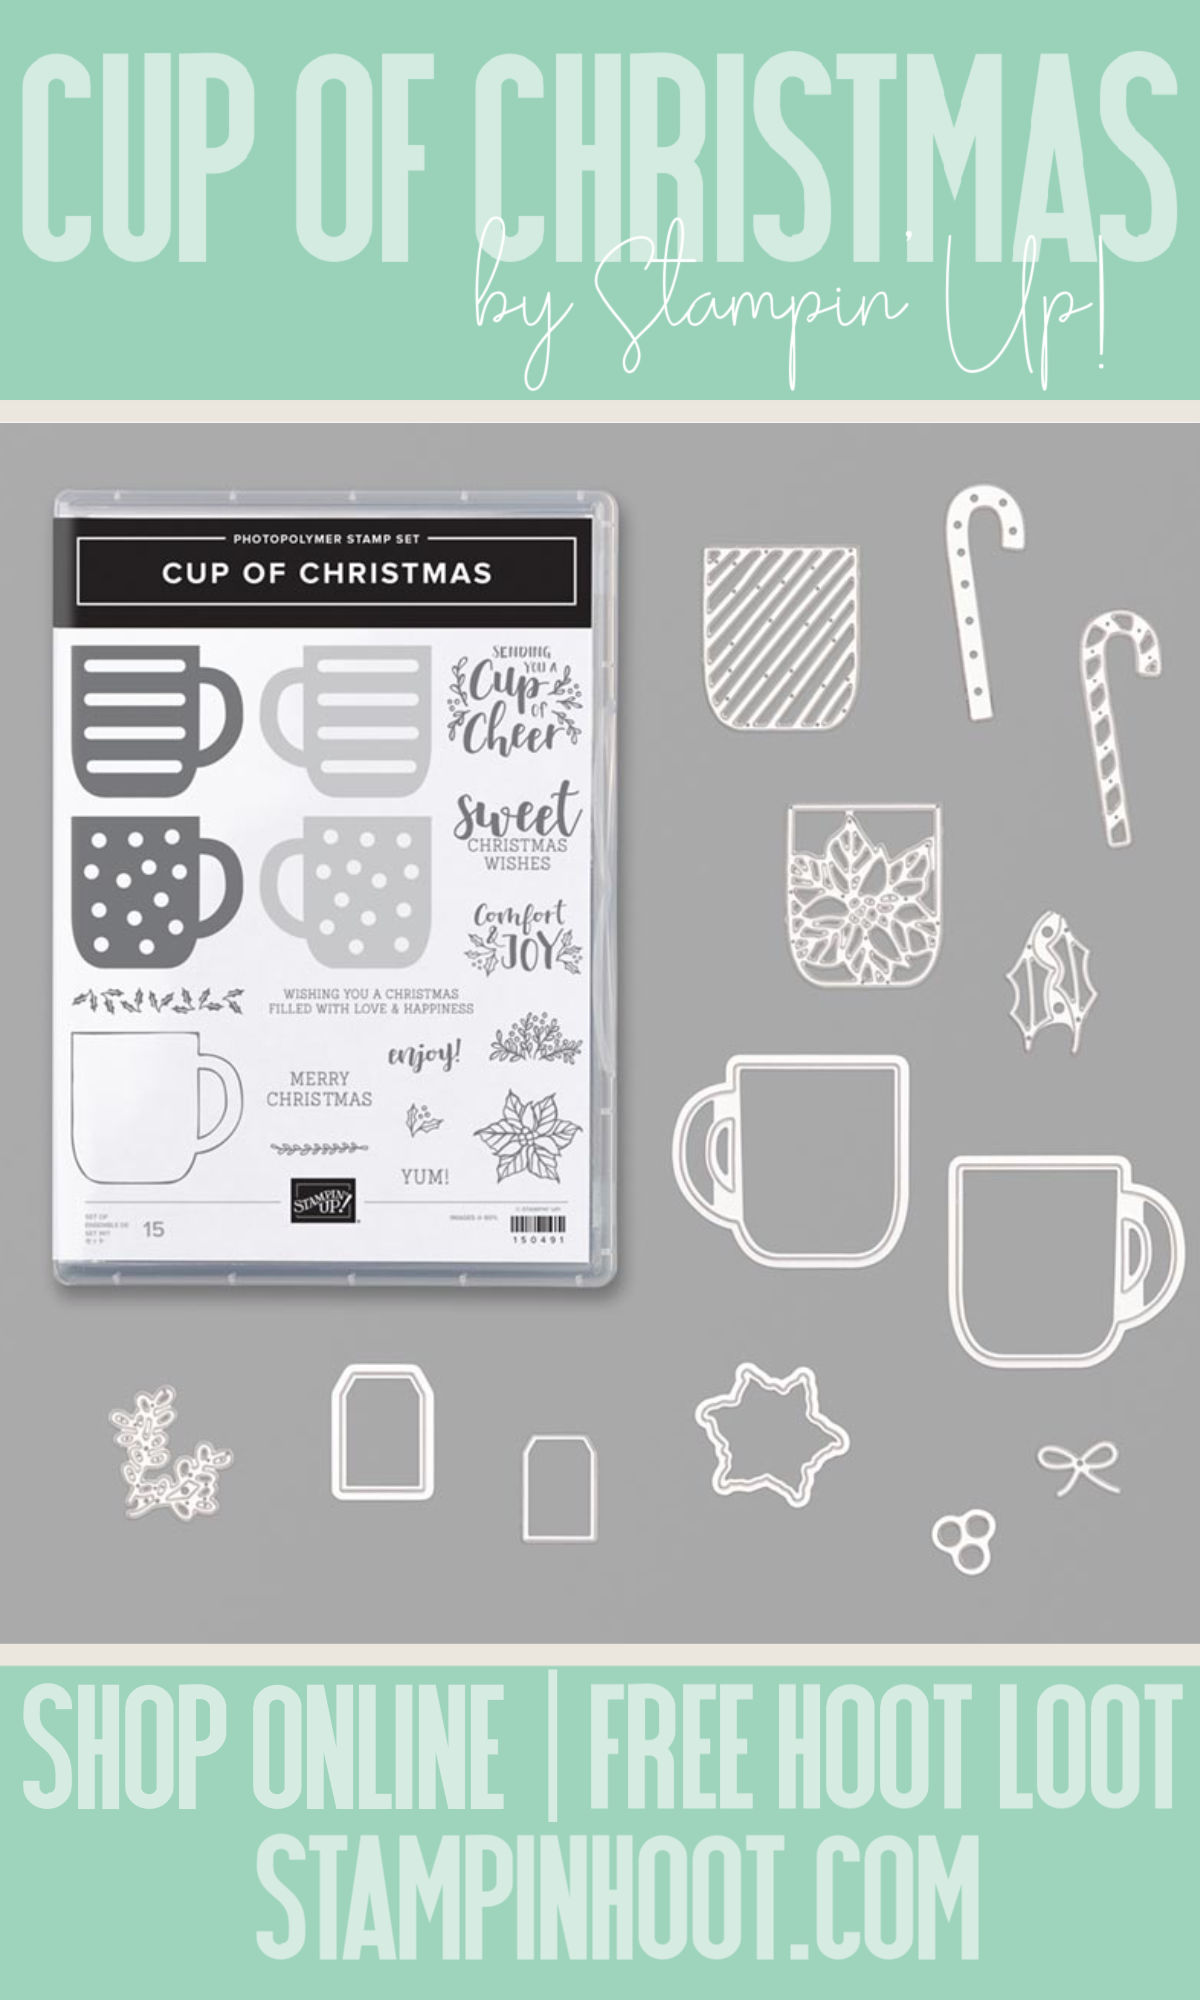 Stampin' Up! Cup of Christmas Bundle from the 2019 Holiday Catalog